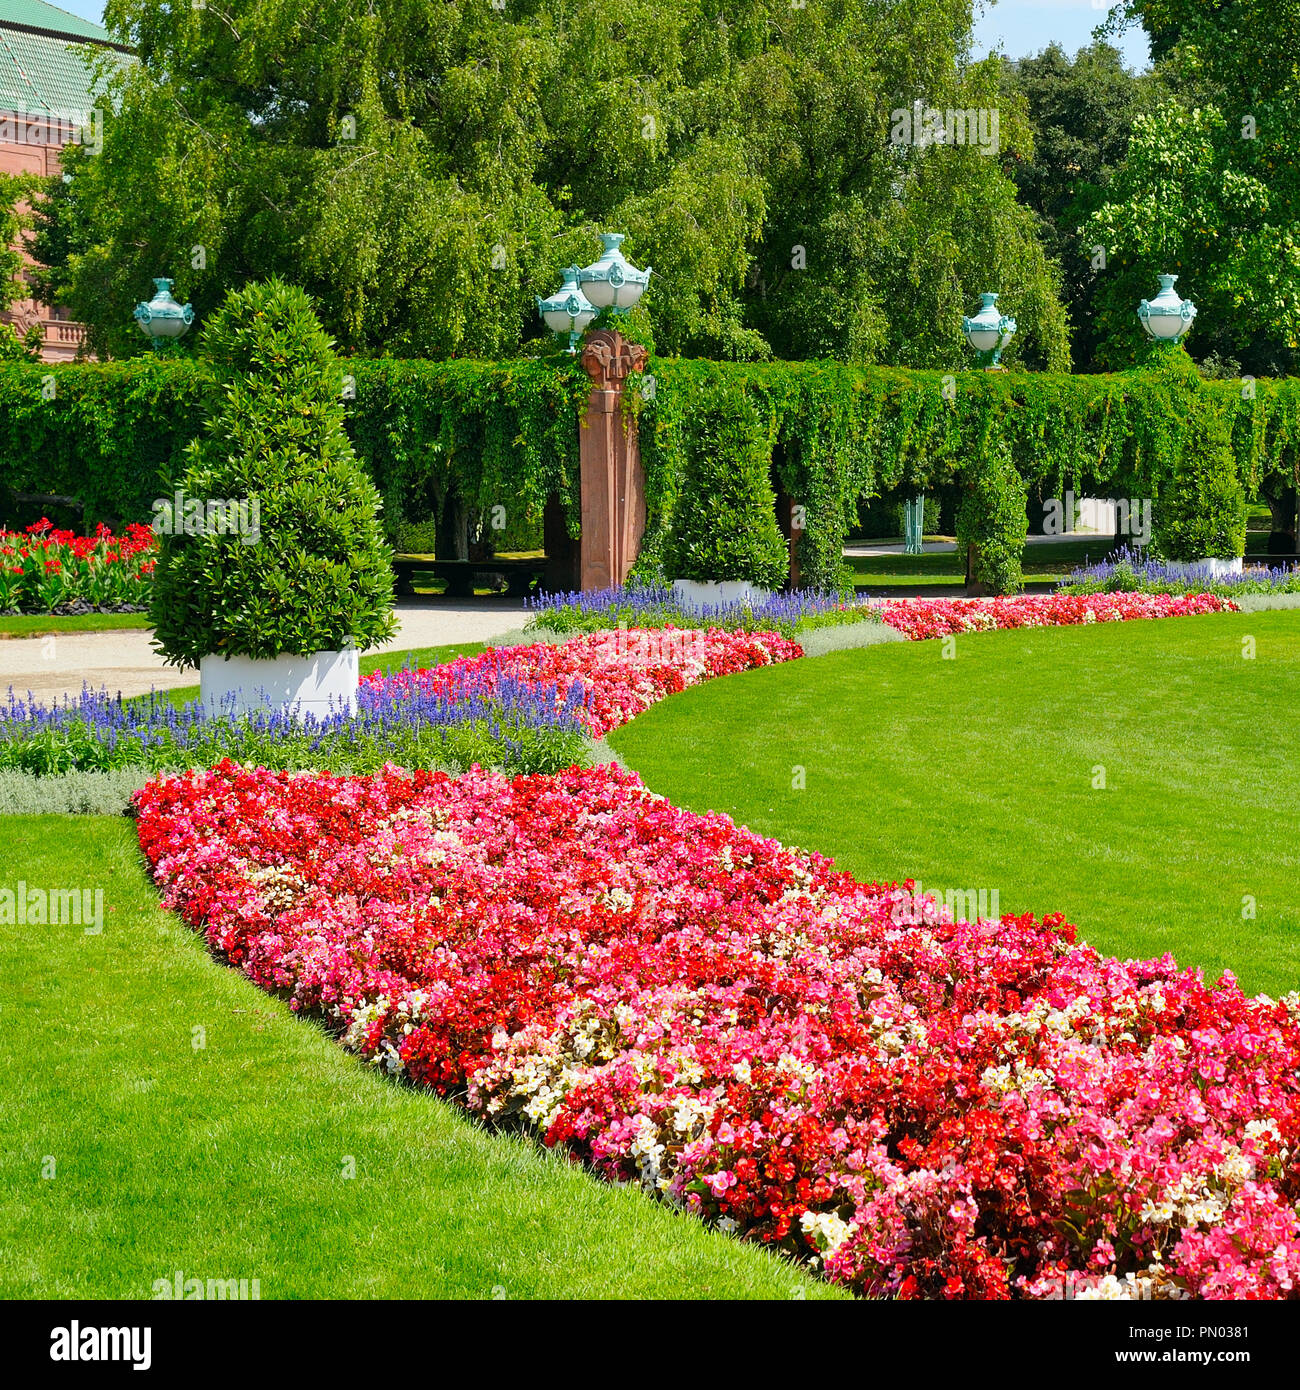 summer park with flower bed and green lawn - Stock Image